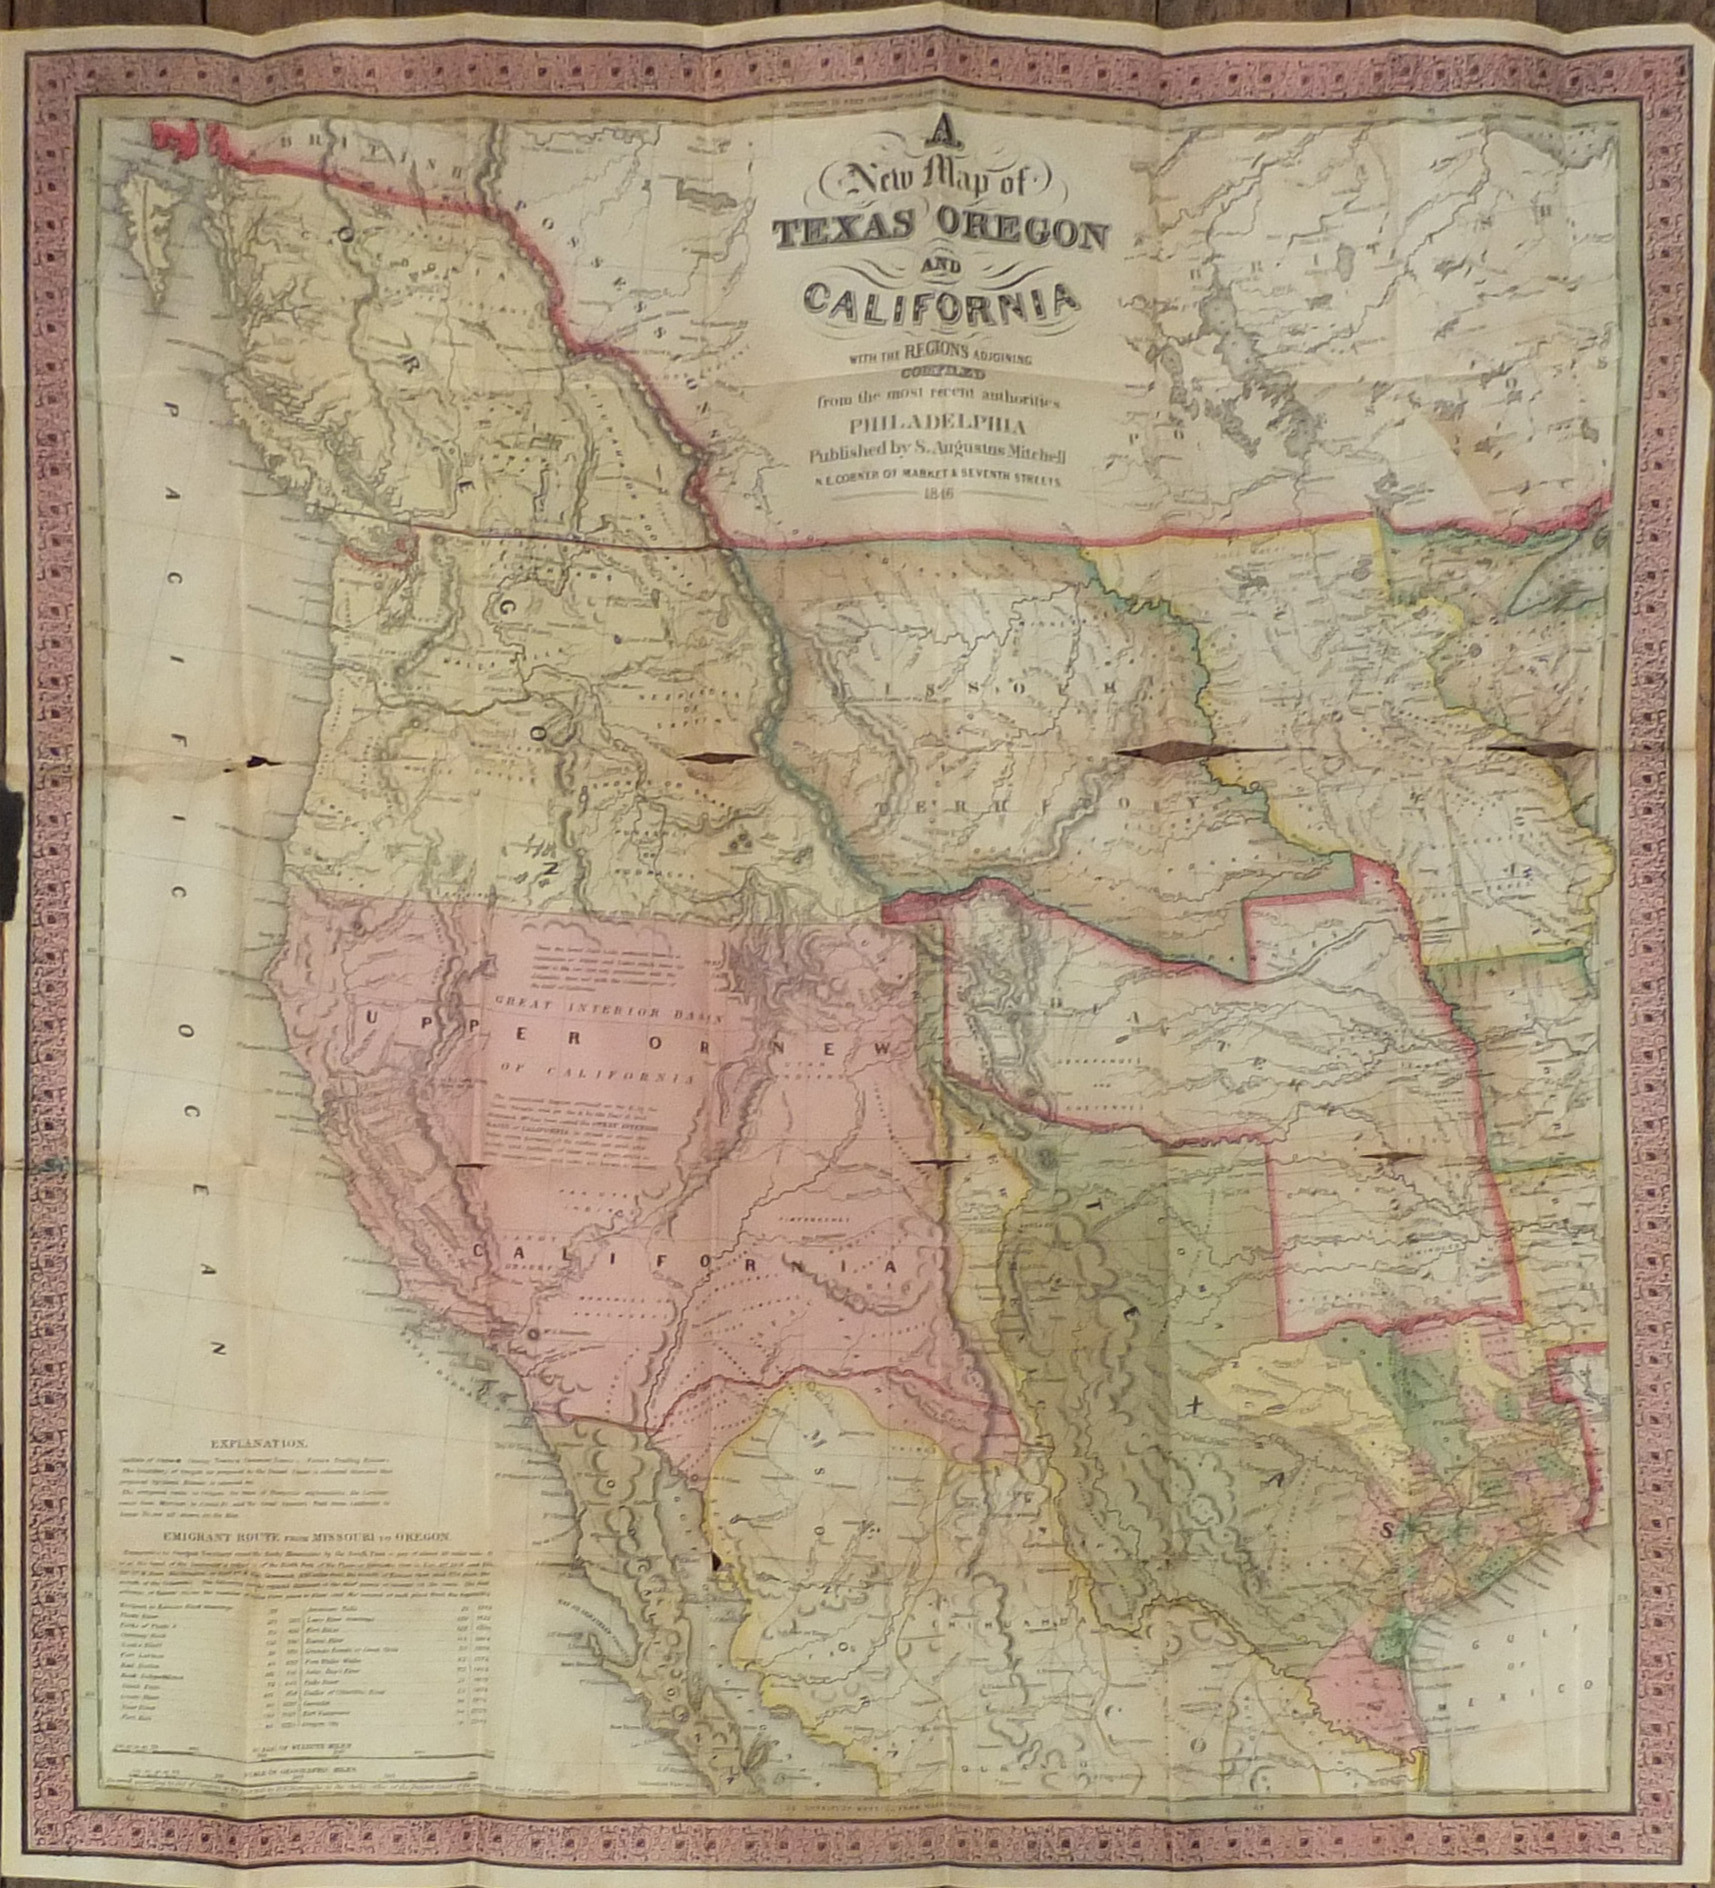 MITC, Samuel Augustus (1790-1868). A New Map of Texas, Oregon ... on